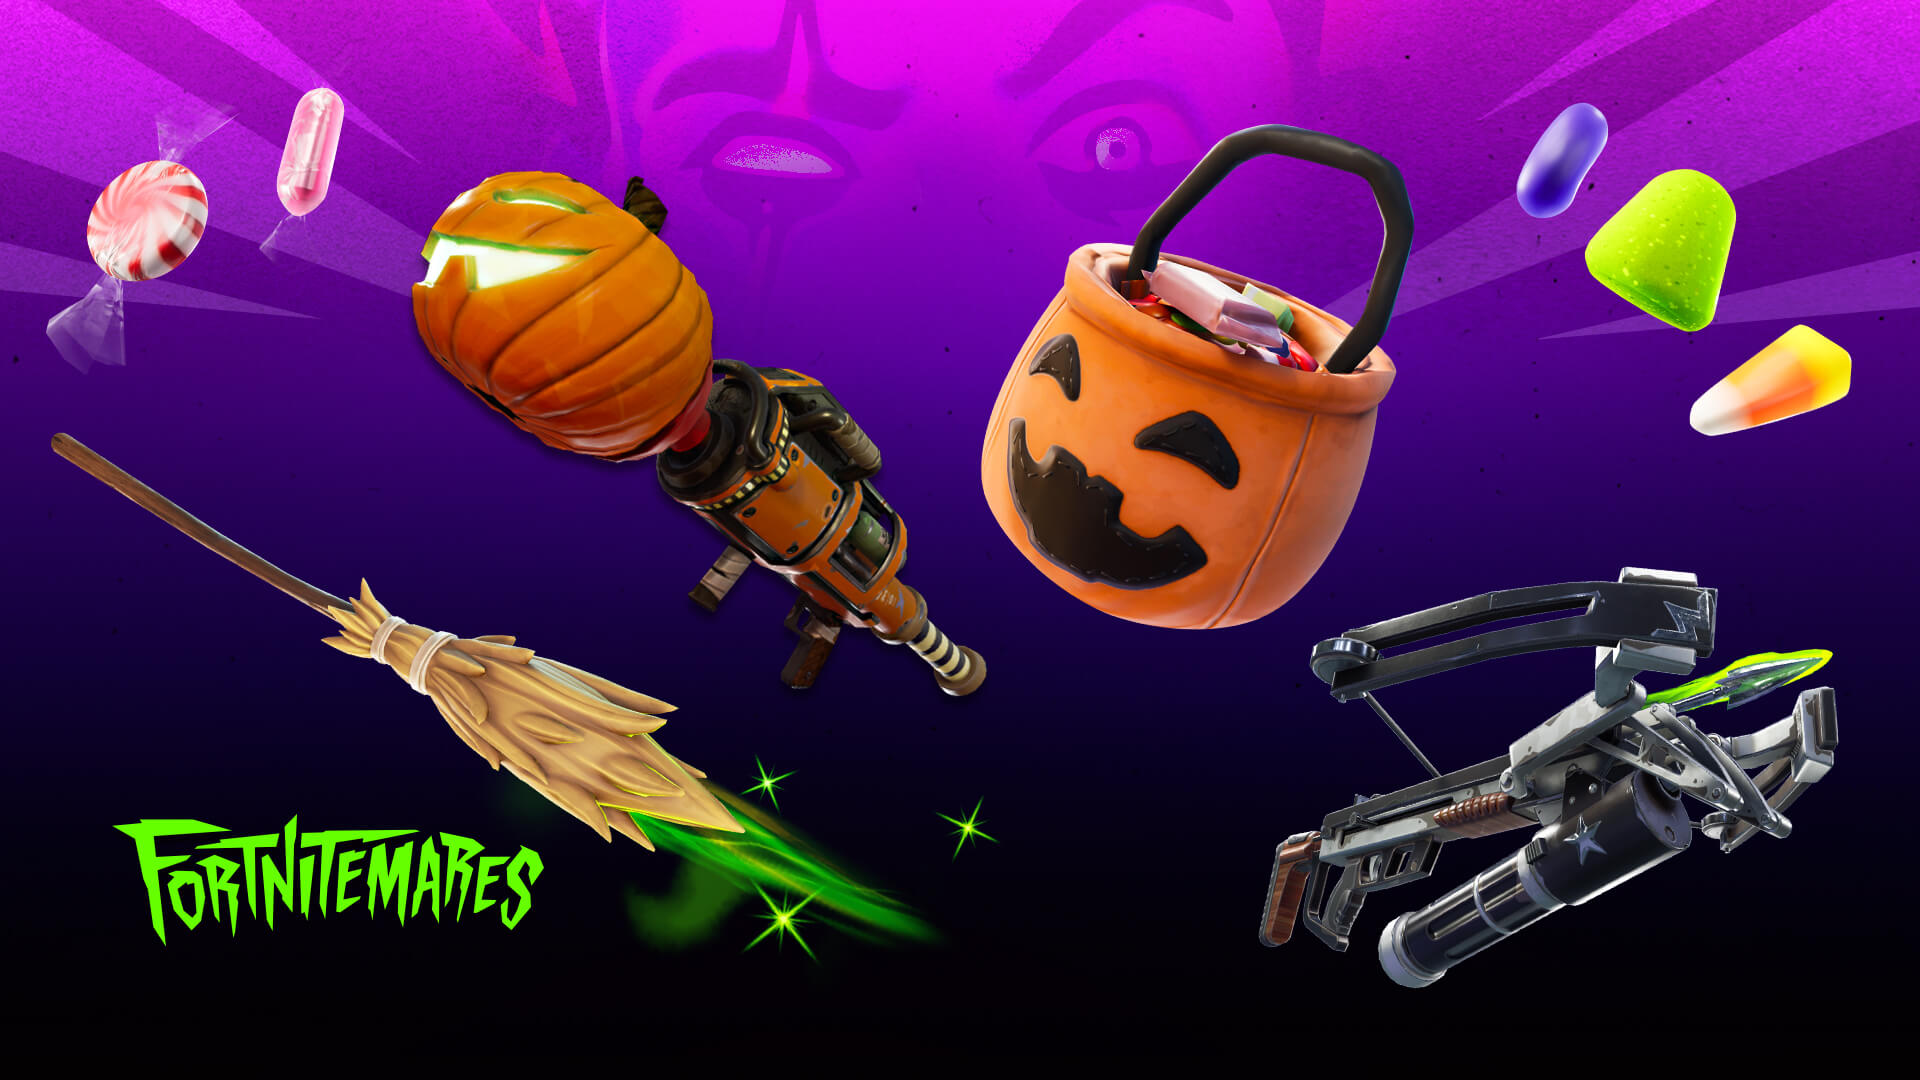 Fortnitemares 2020 items